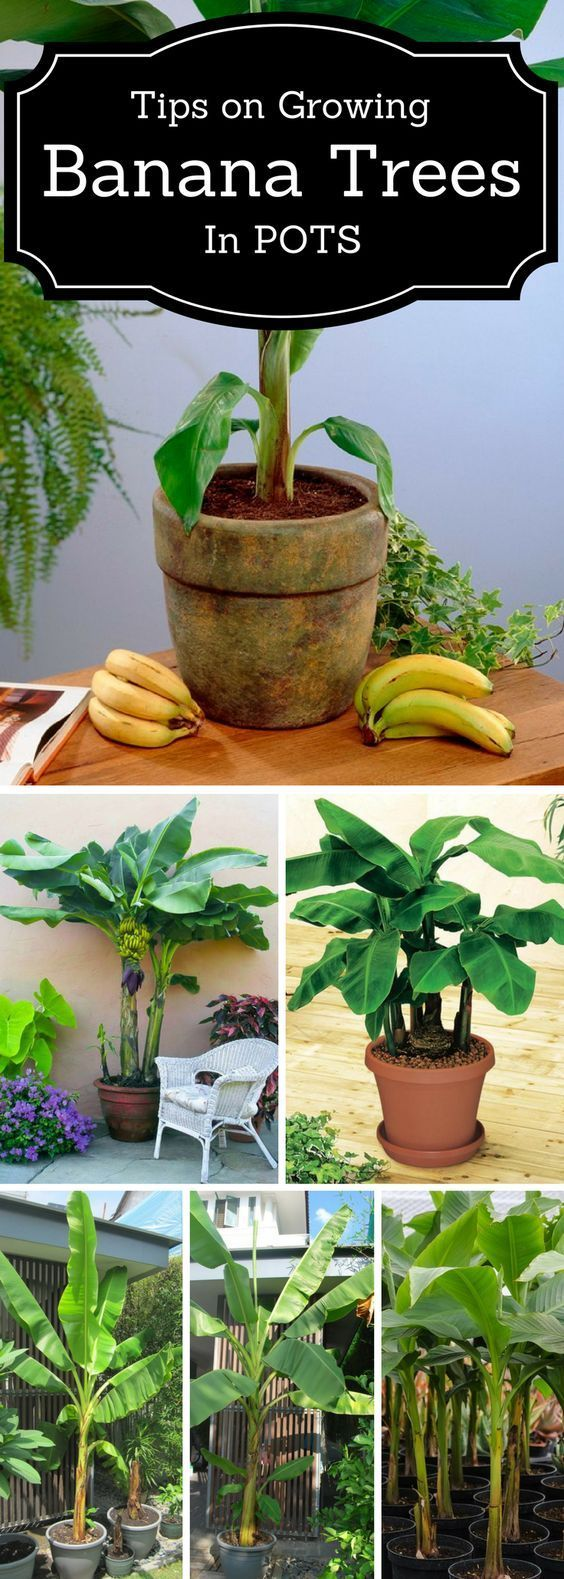 gardening tips for growing banana trees in pots or containers gardening diy tips pinterest. Black Bedroom Furniture Sets. Home Design Ideas